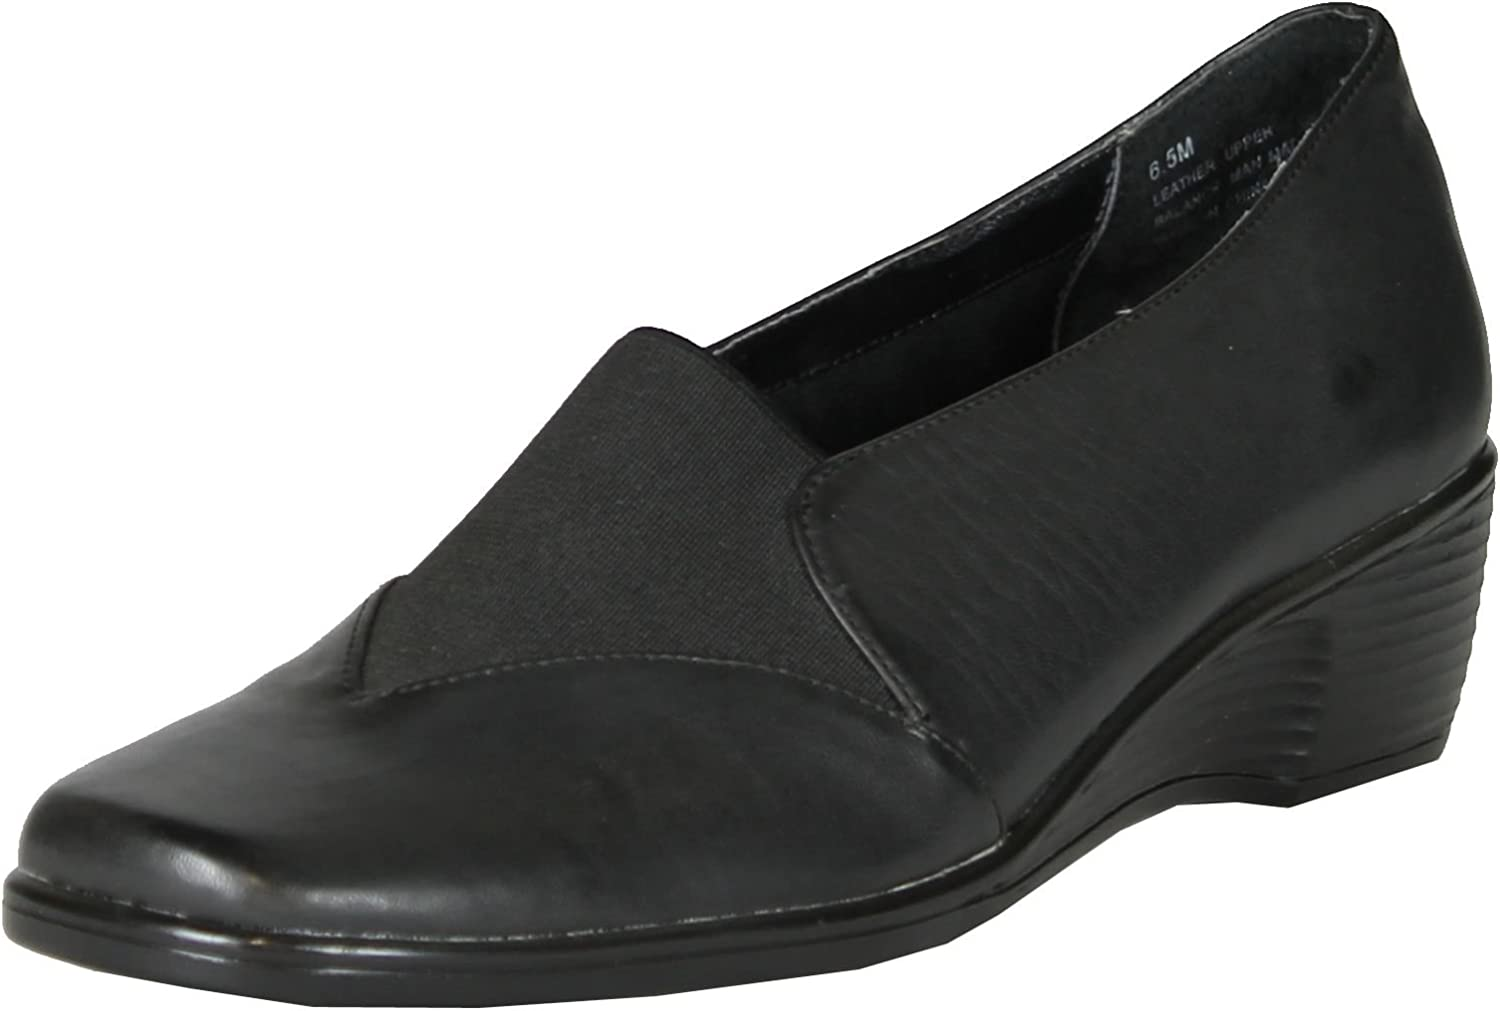 Jes Footwear Womens Boston Comfort Flats shoes